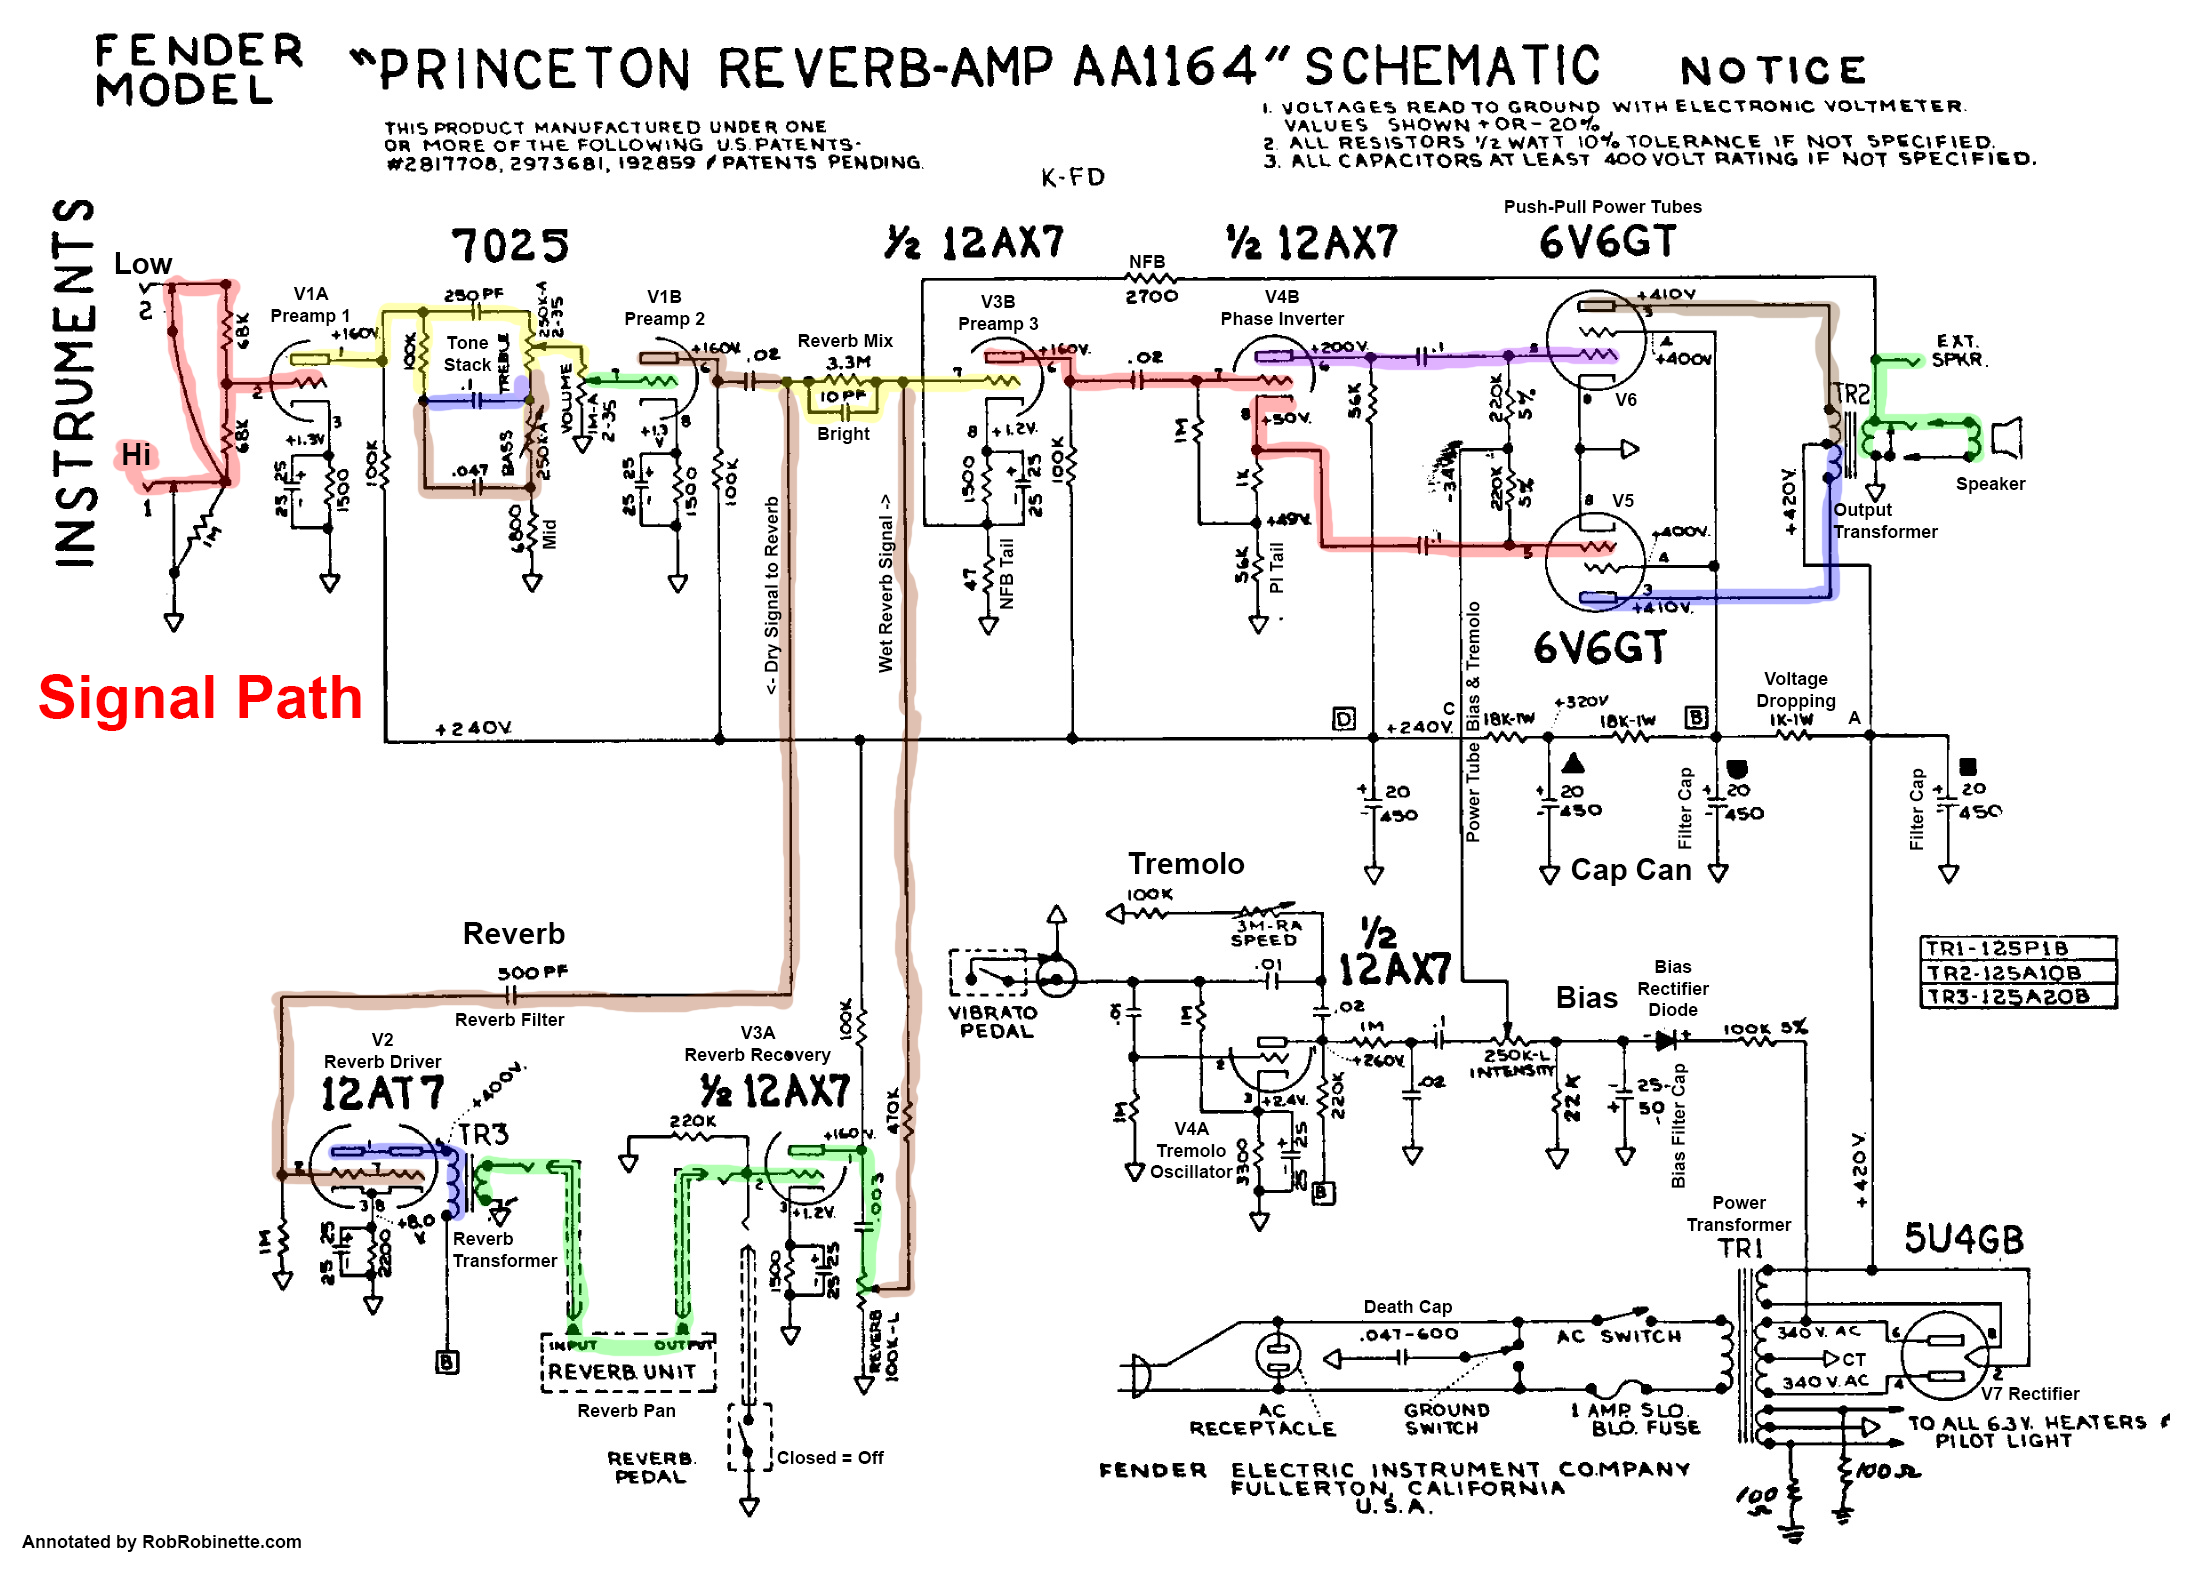 Marshall Amp Schematic | Wiring Diagram on marshall valvestate amplifier schematic, marshall 2205 schematic, 1973 marshall schematic, marshall jtm 45 schematic, marshall jcm 2000 schematic, marshall 8100 schematic, marshall 8040 schematic, marshall 1962 schematic, marshall 75 reverb schematic, marshall jcm 900 schematic, marshall lead 100 mosfet schematic, marshall 1959 schematic, marshall 18w schematic,